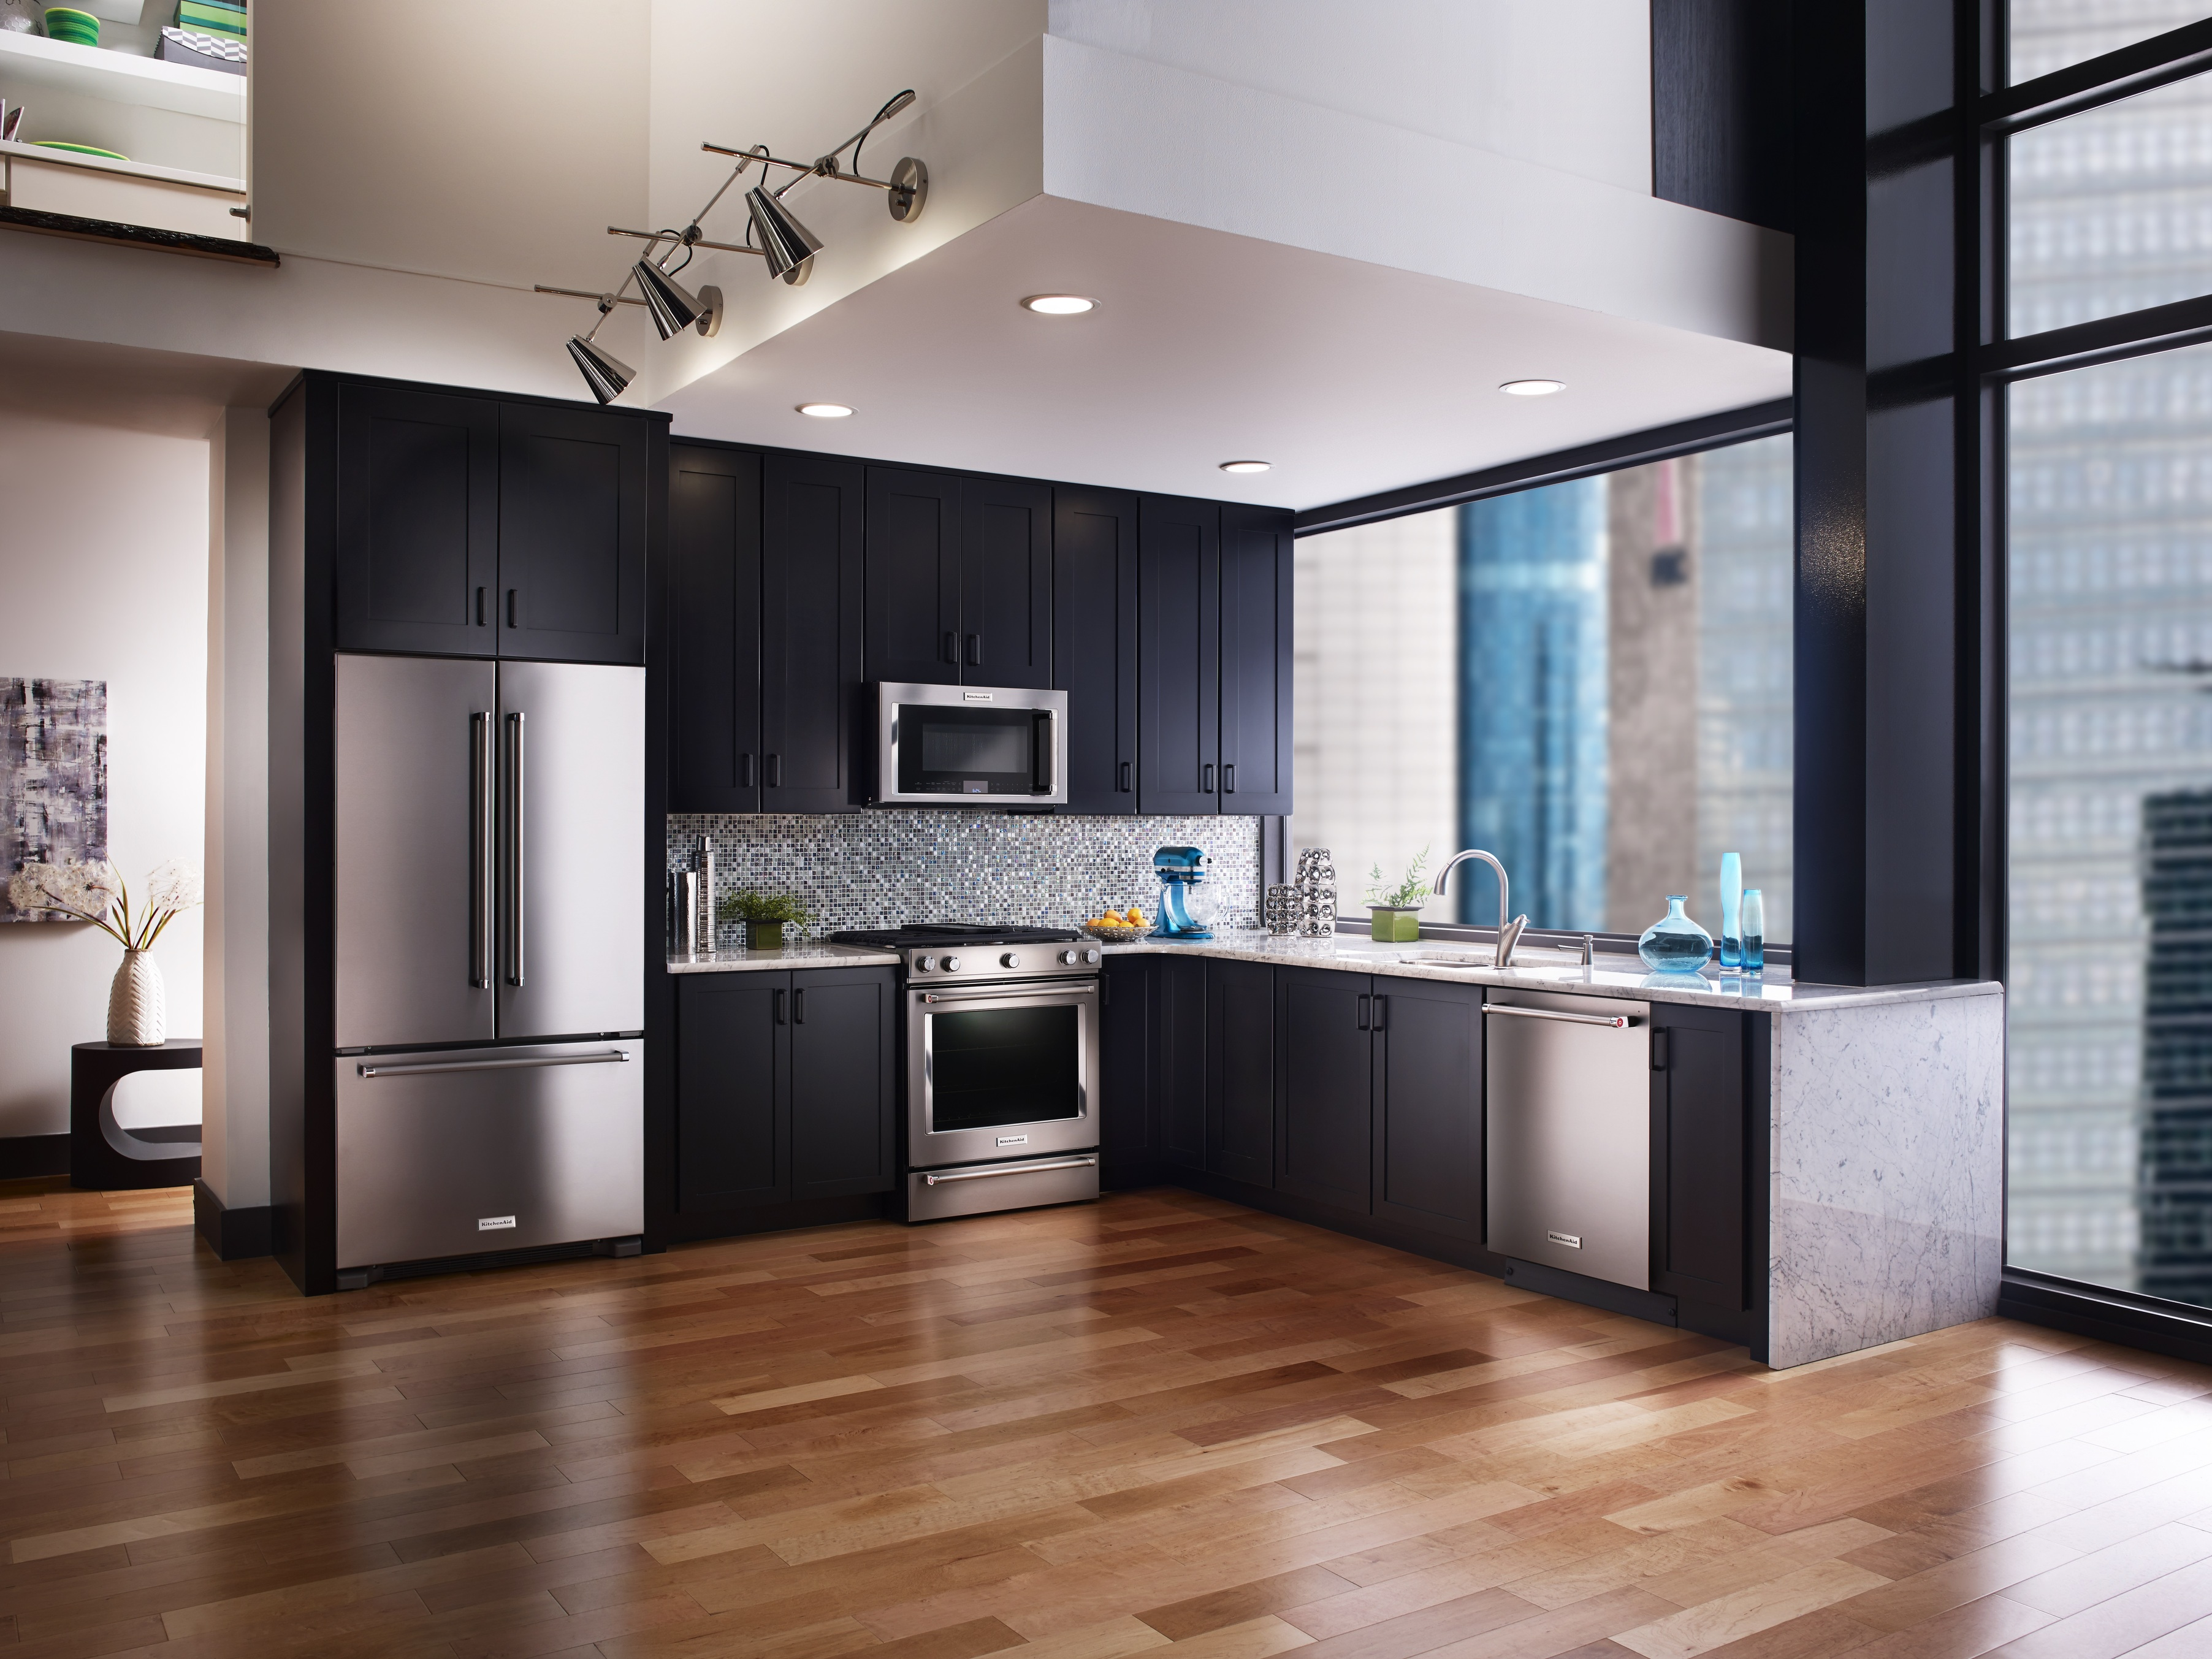 KitchenAid Appliances From Best Buy Will Transform Your Kitchen | MomsWhoSave.com